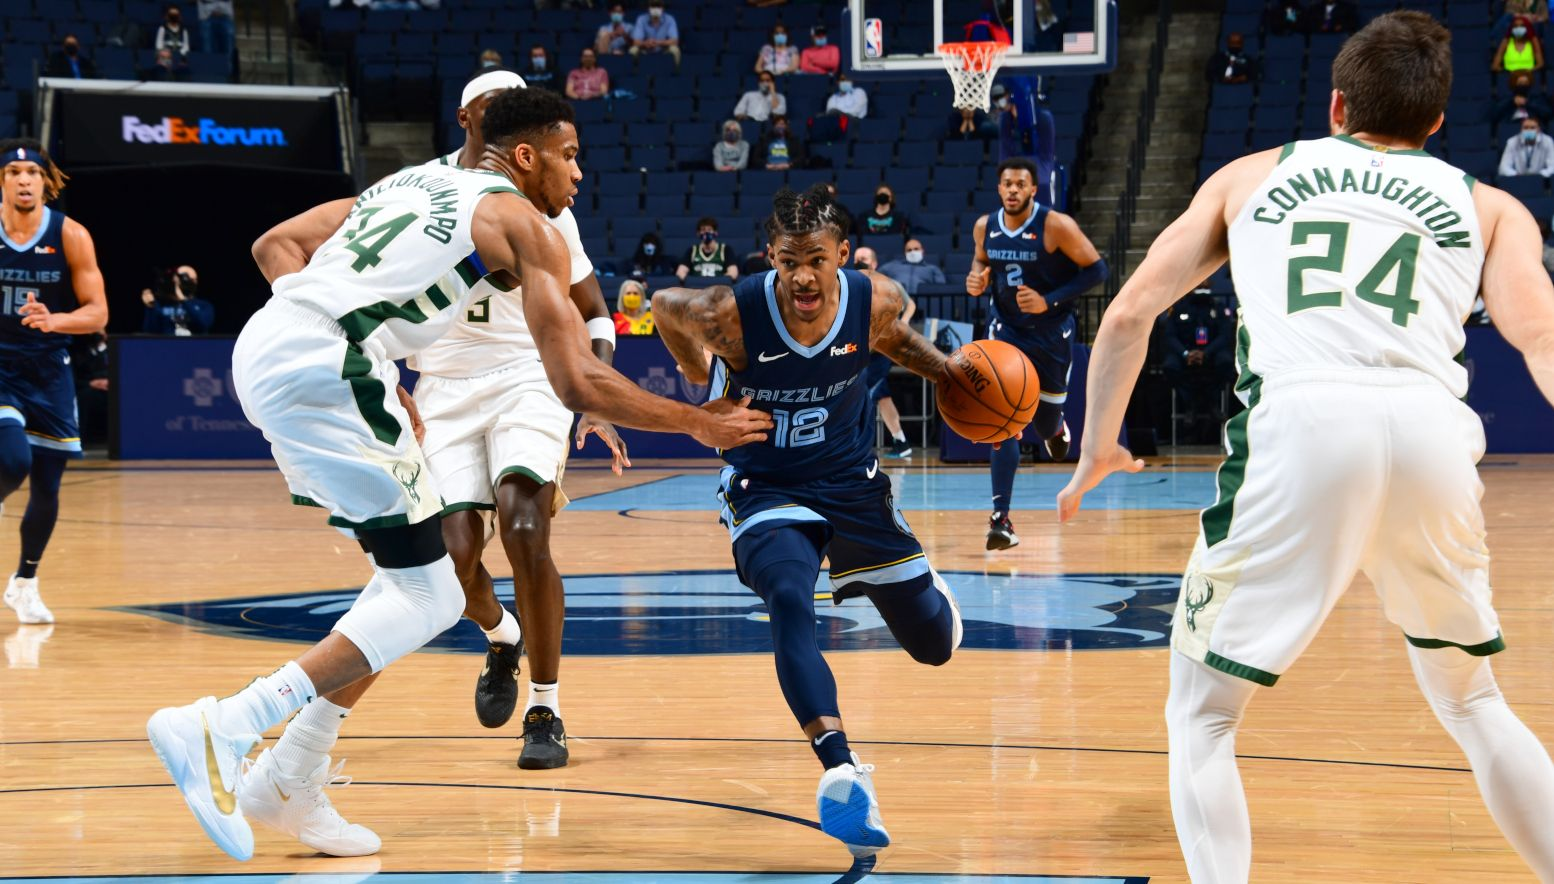 Post-match report: The Grizzlies fall to the Bucks in the final seconds 112-111